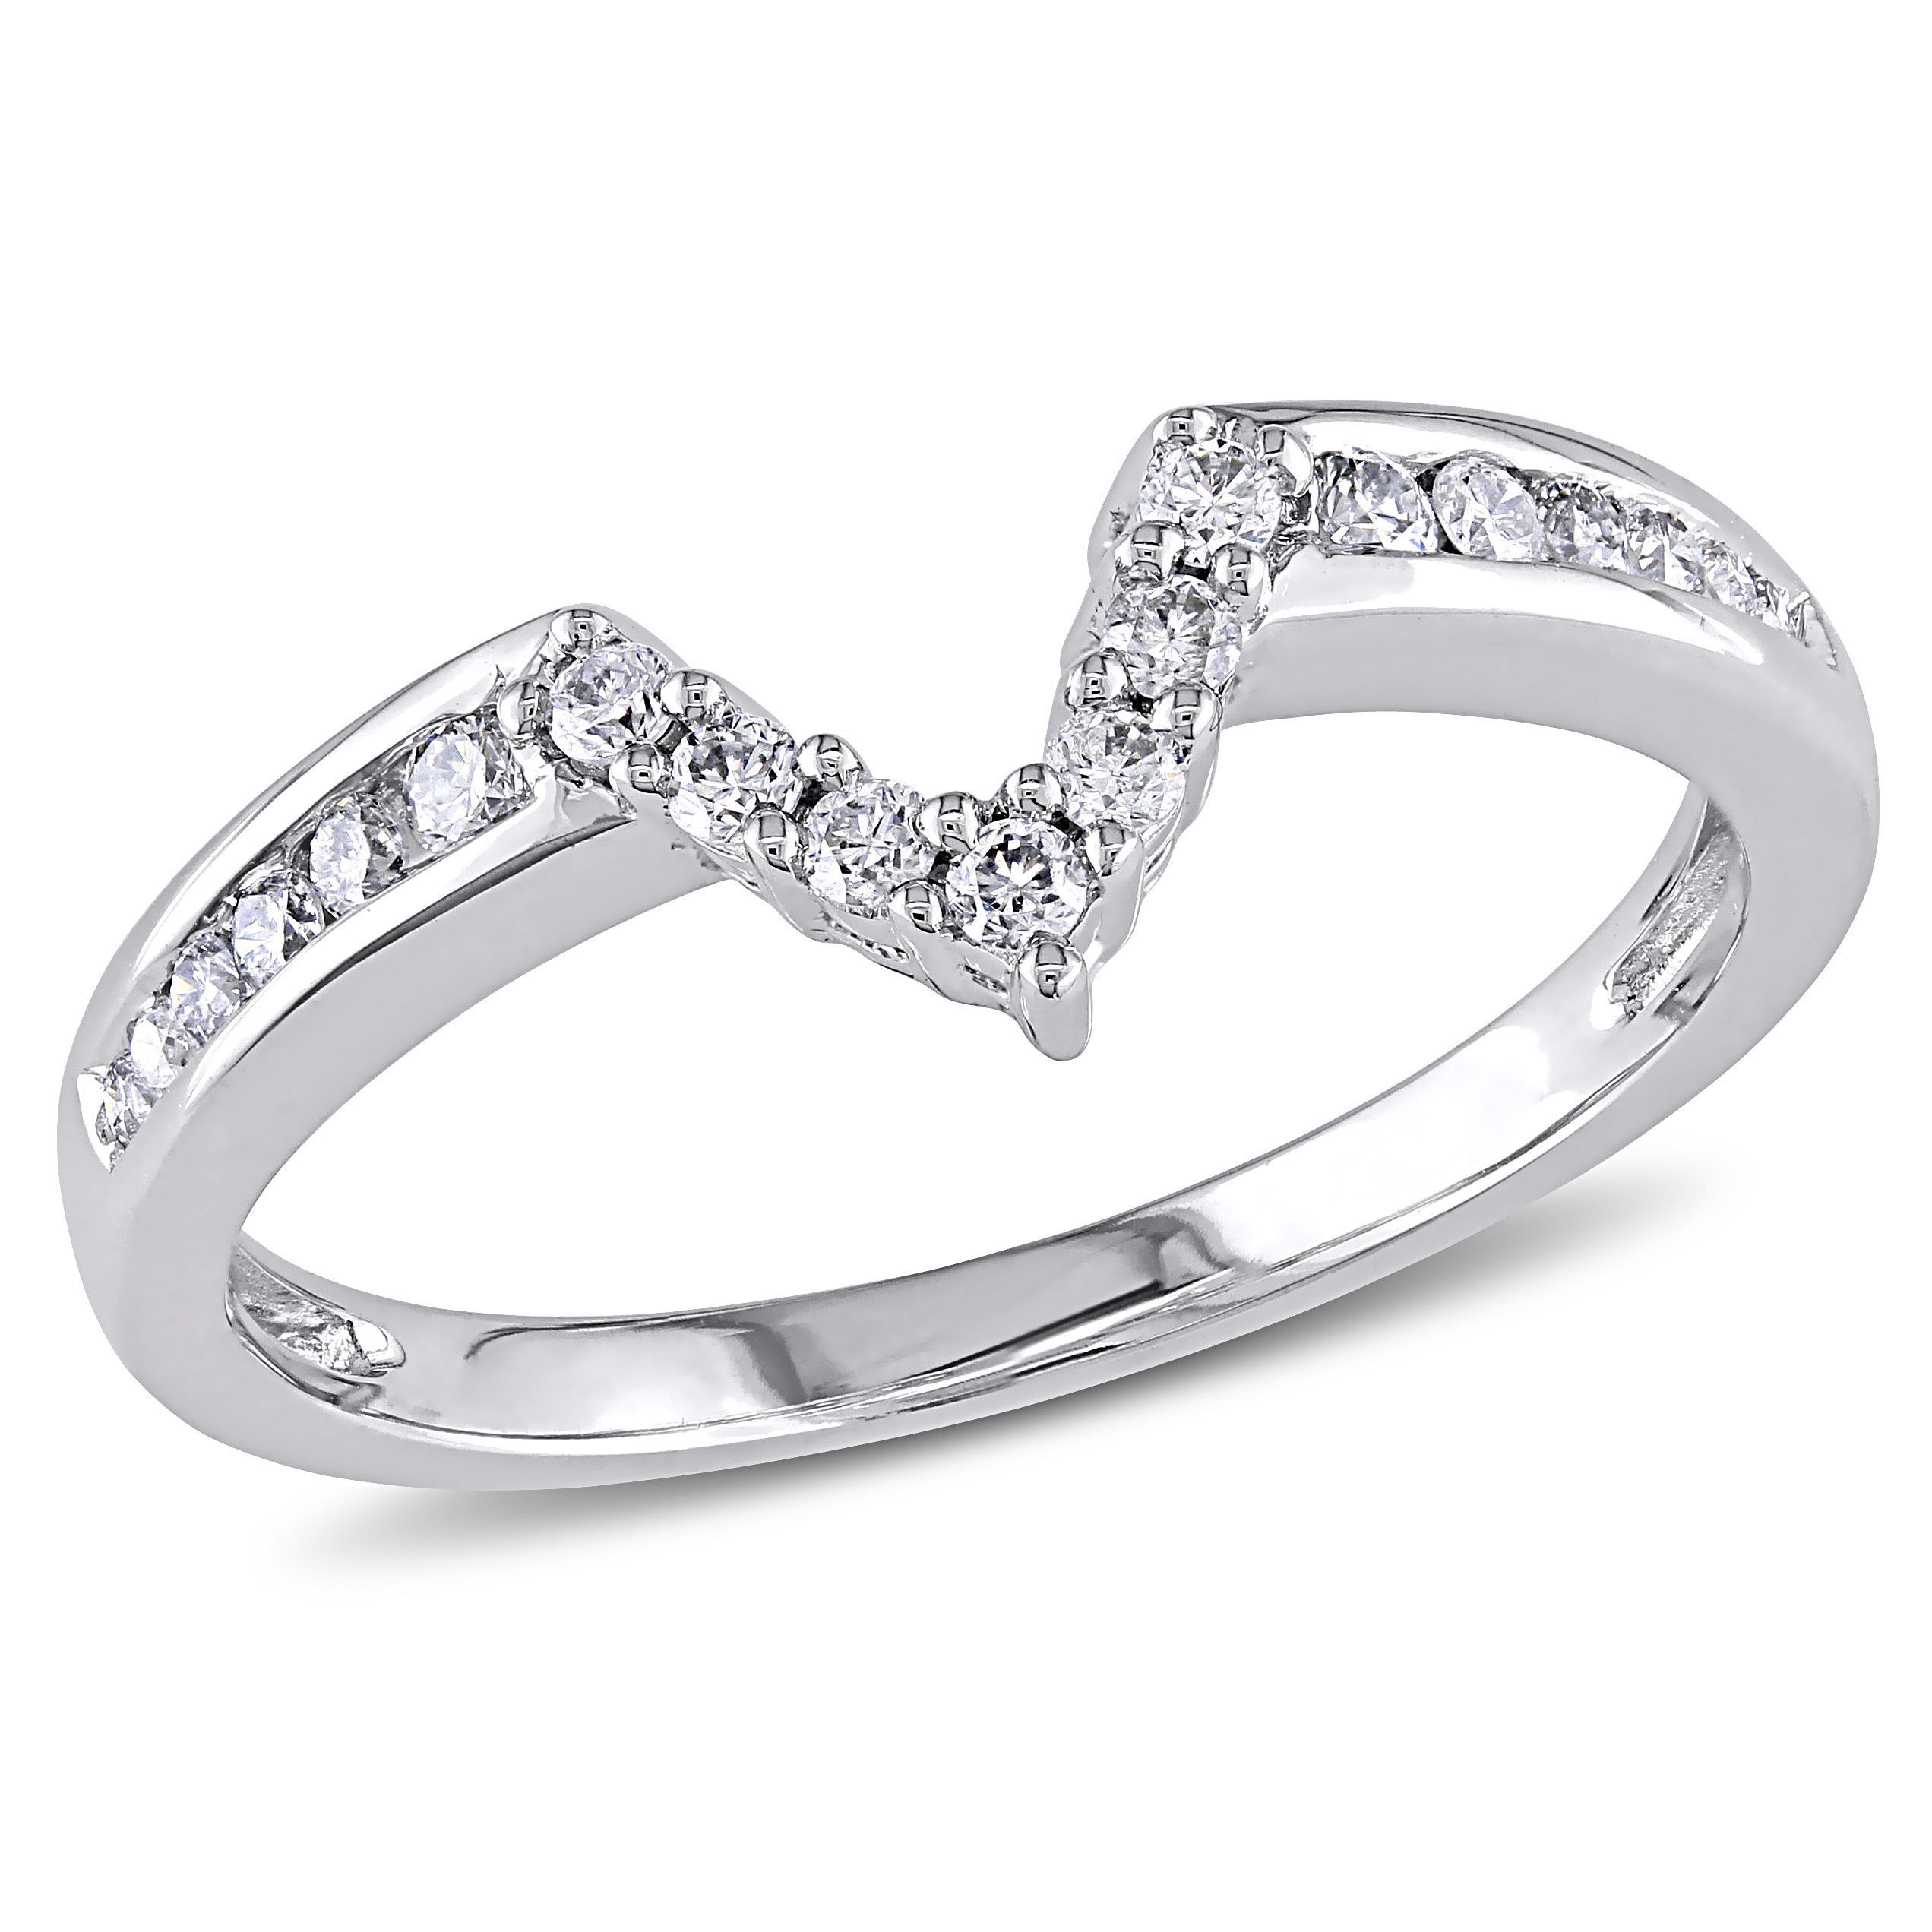 shaped diamond estate platinum tw pear with baguette side ring in diamonds rings wedding